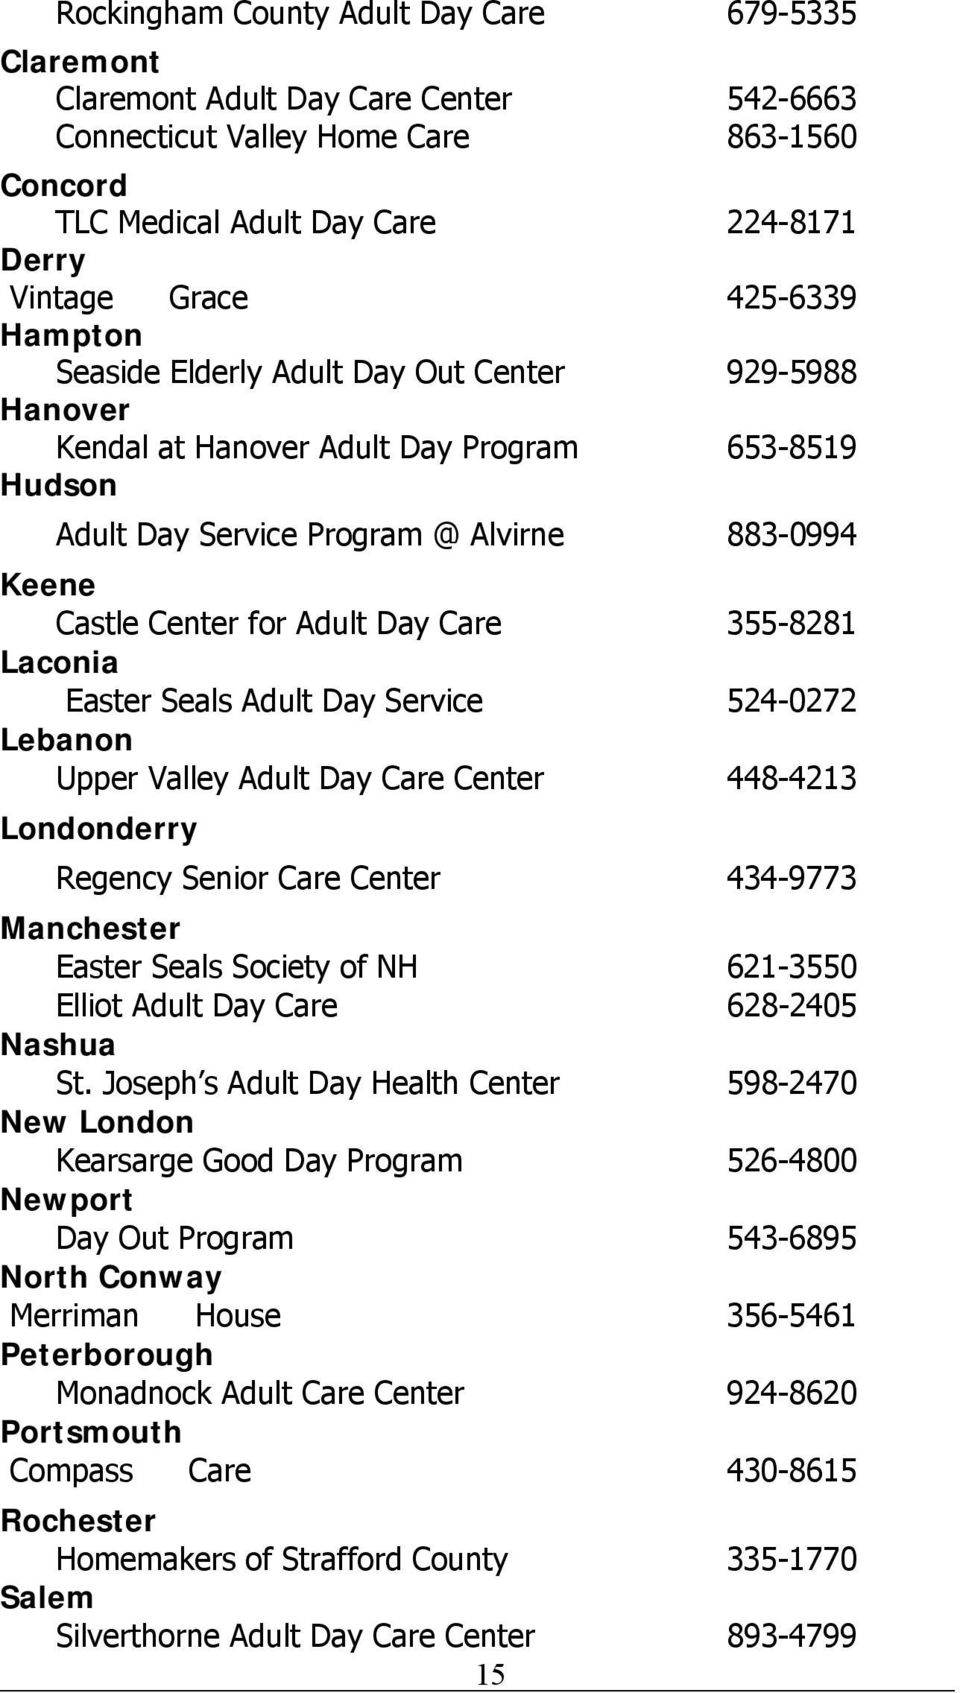 Day Care 355-8281 Laconia Easter Seals Adult Day Service 524-0272 Lebanon Upper Valley Adult Day Care Center 448-4213 Londonderry Regency Senior Care Center 434-9773 Manchester Easter Seals Society